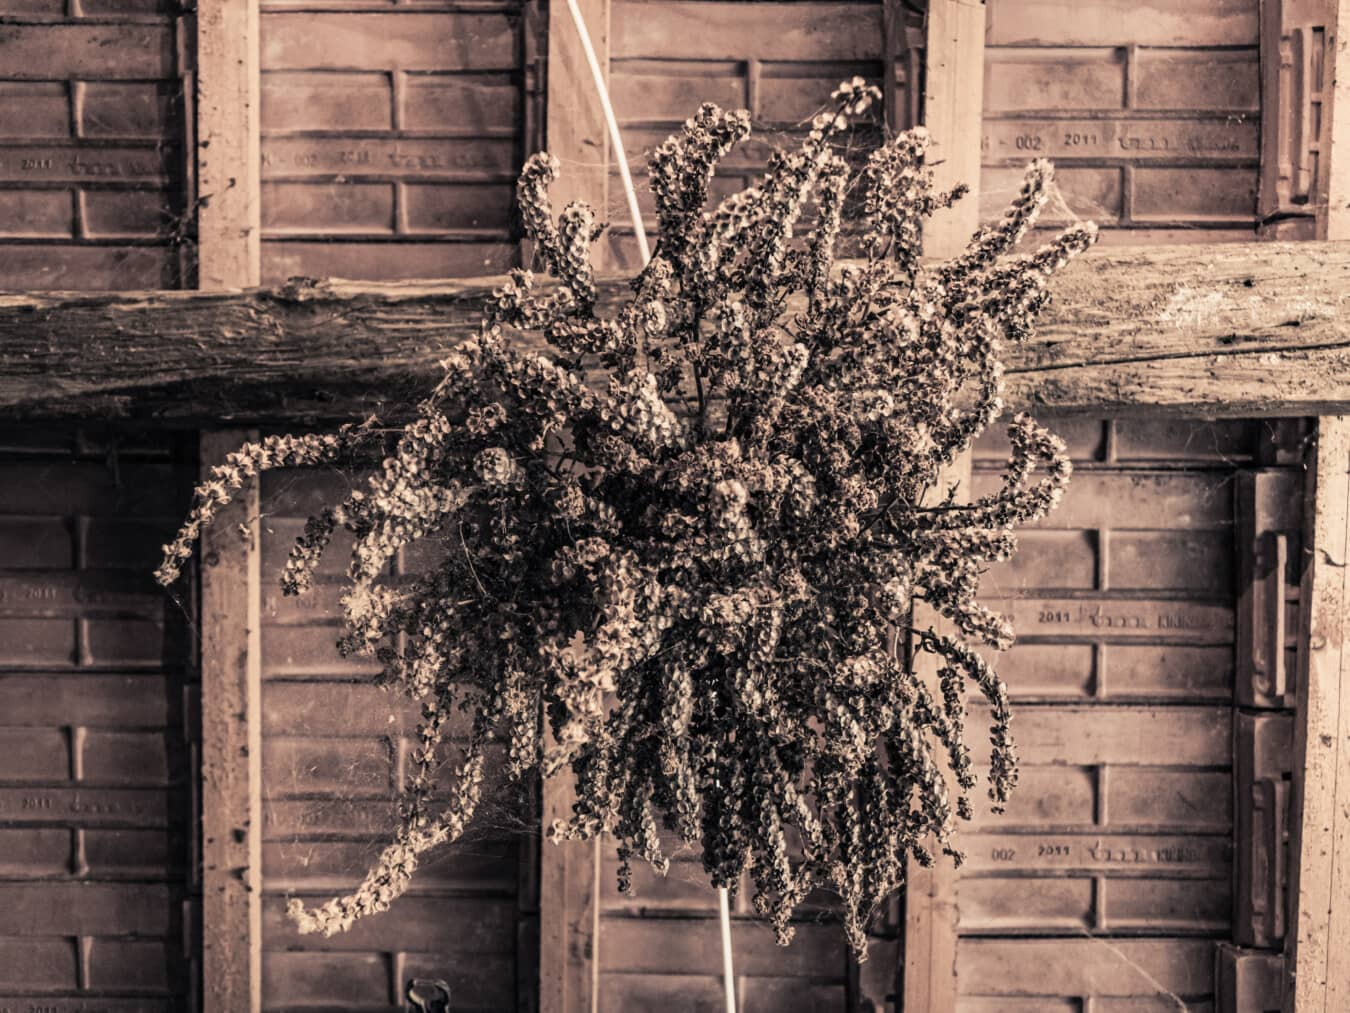 roof, underneath, hanging, bouquet, vintage, sepia, old, building, architecture, wood